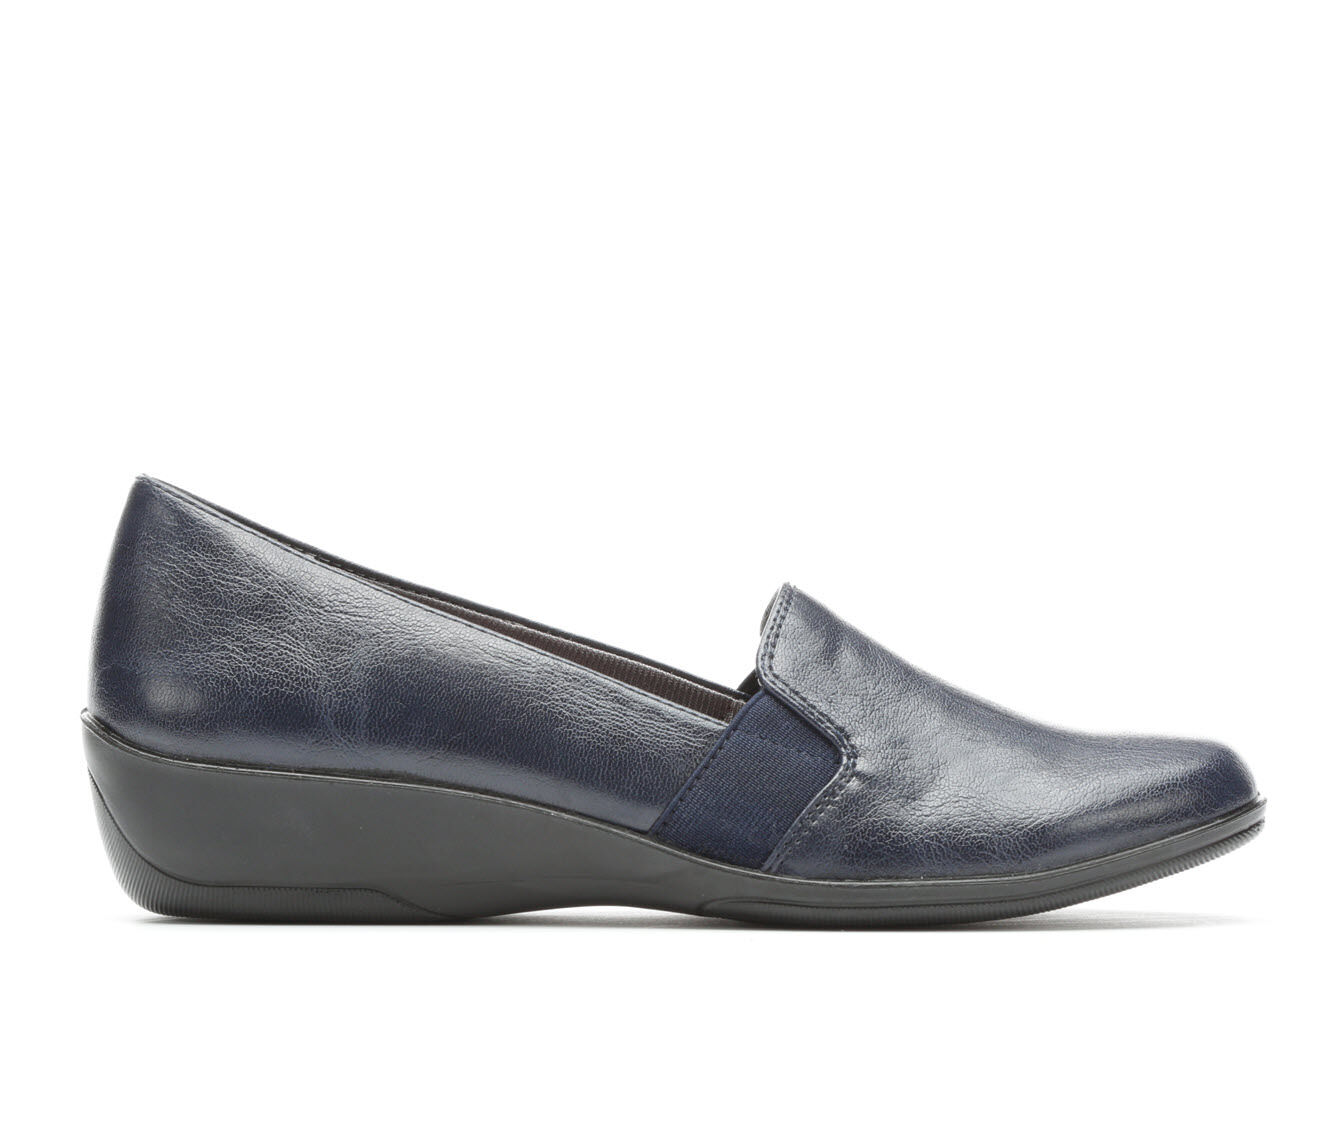 buy new series Women's LifeStride Isabelle Loafers Navy